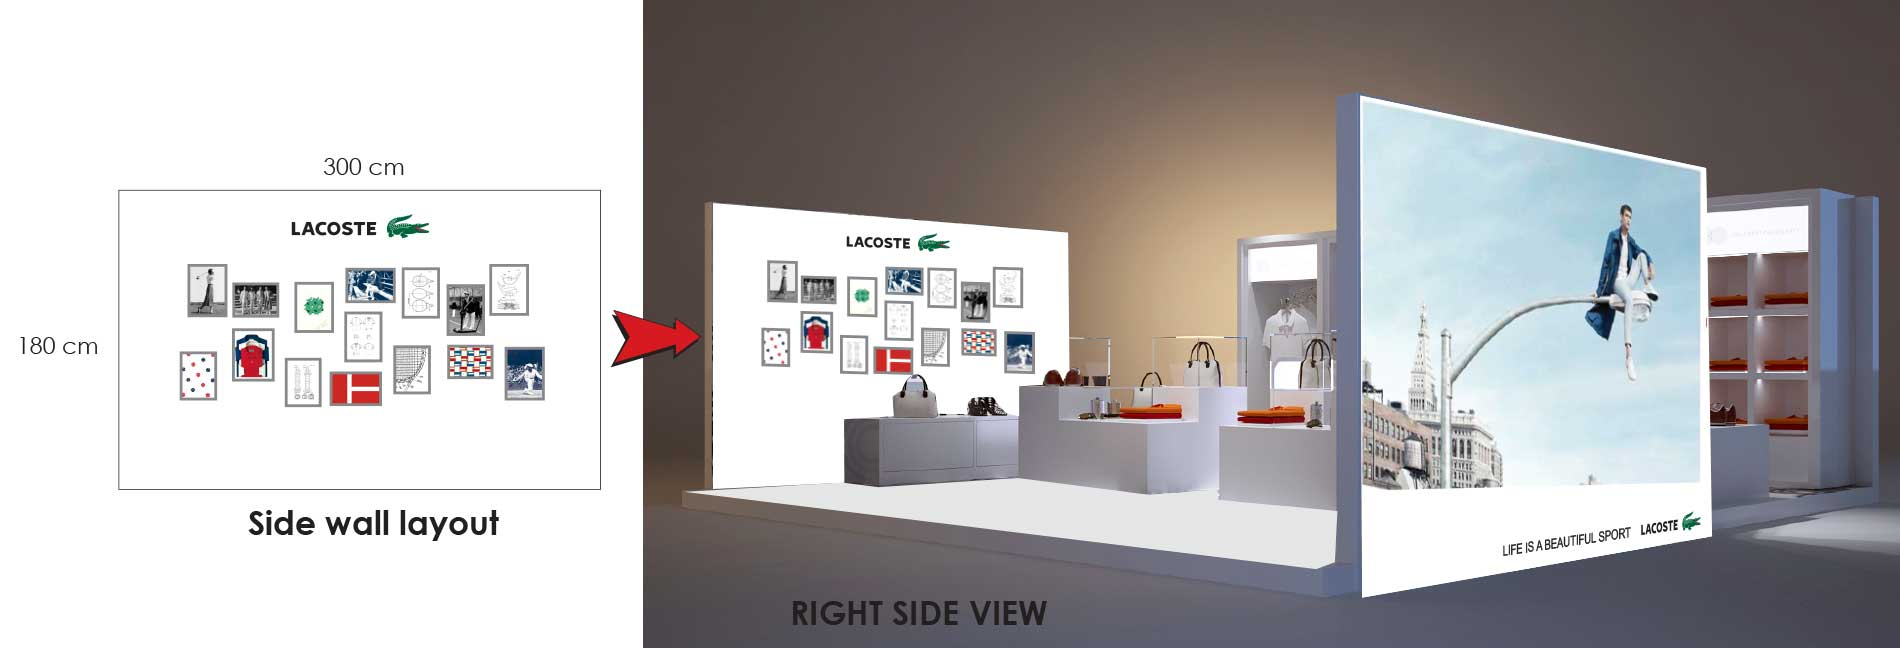 Lacoste-podium2-rt-view